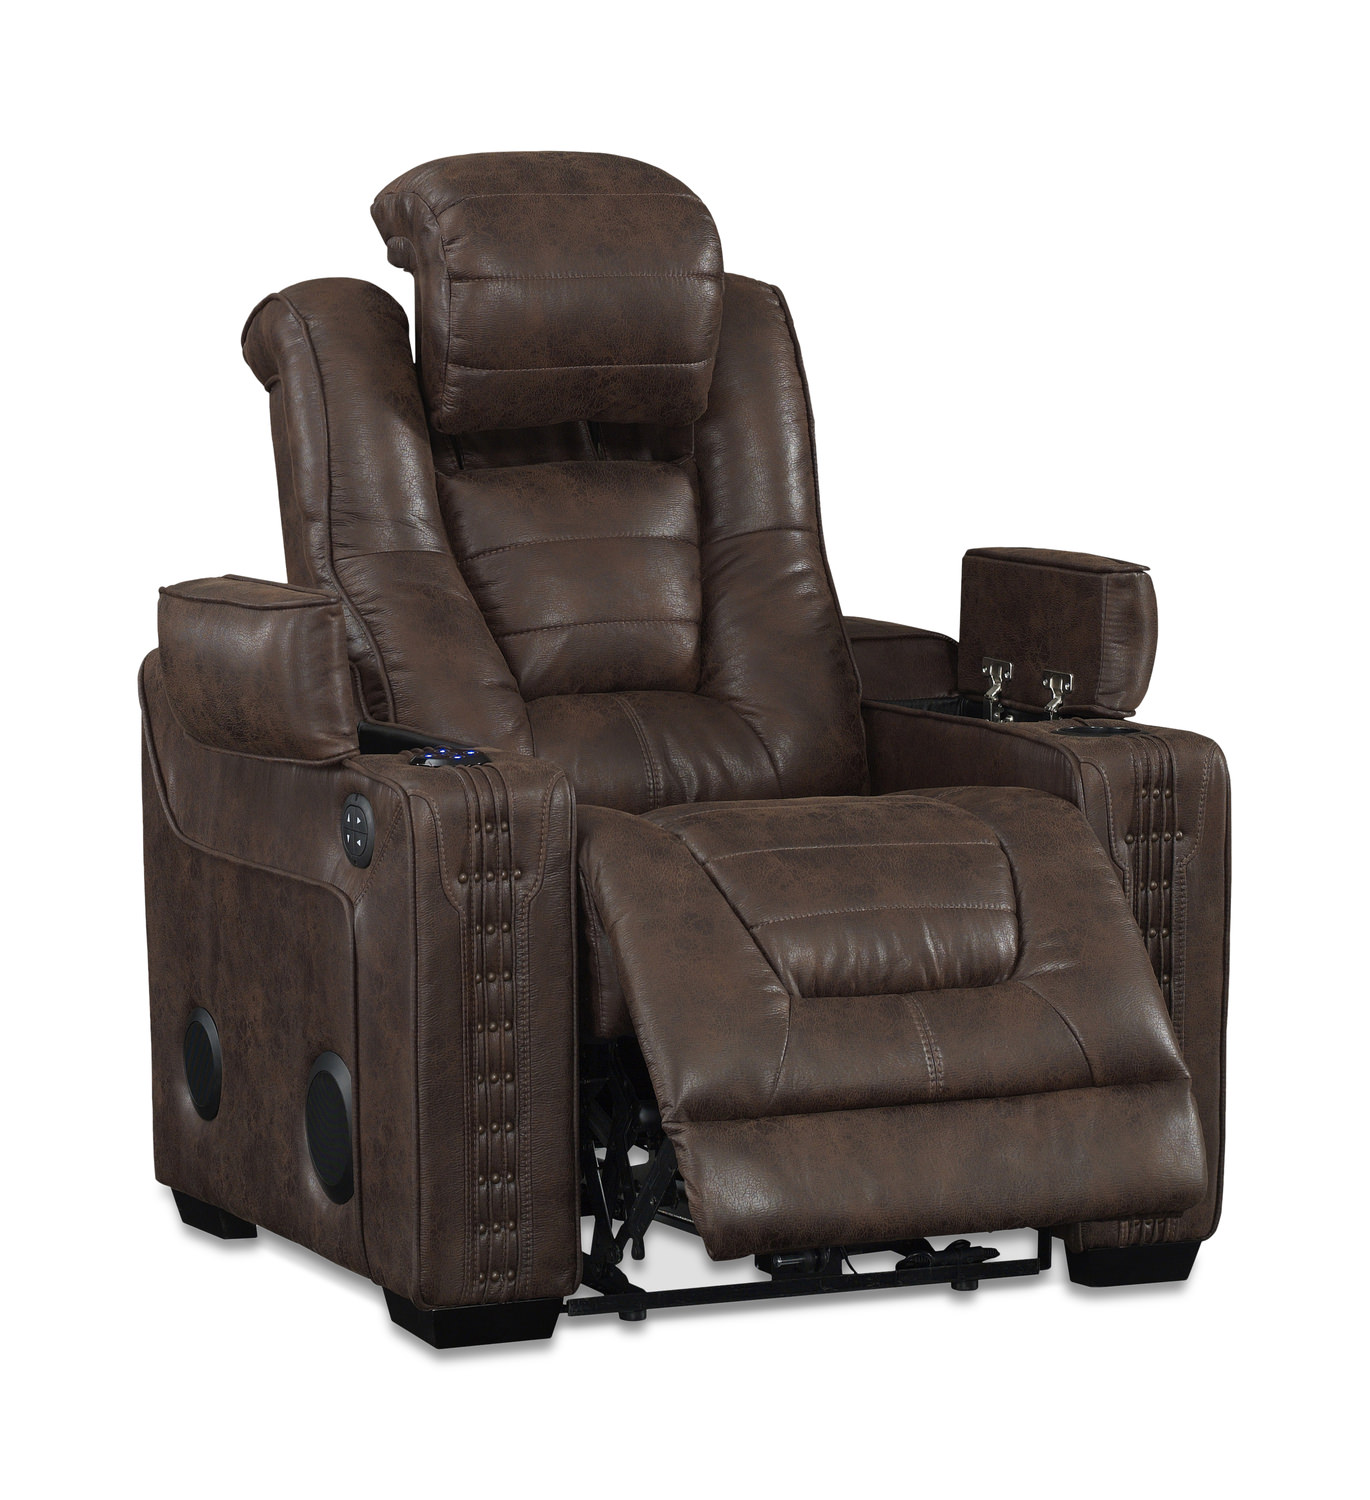 Morph power recliner hom furniture for Chair recliner